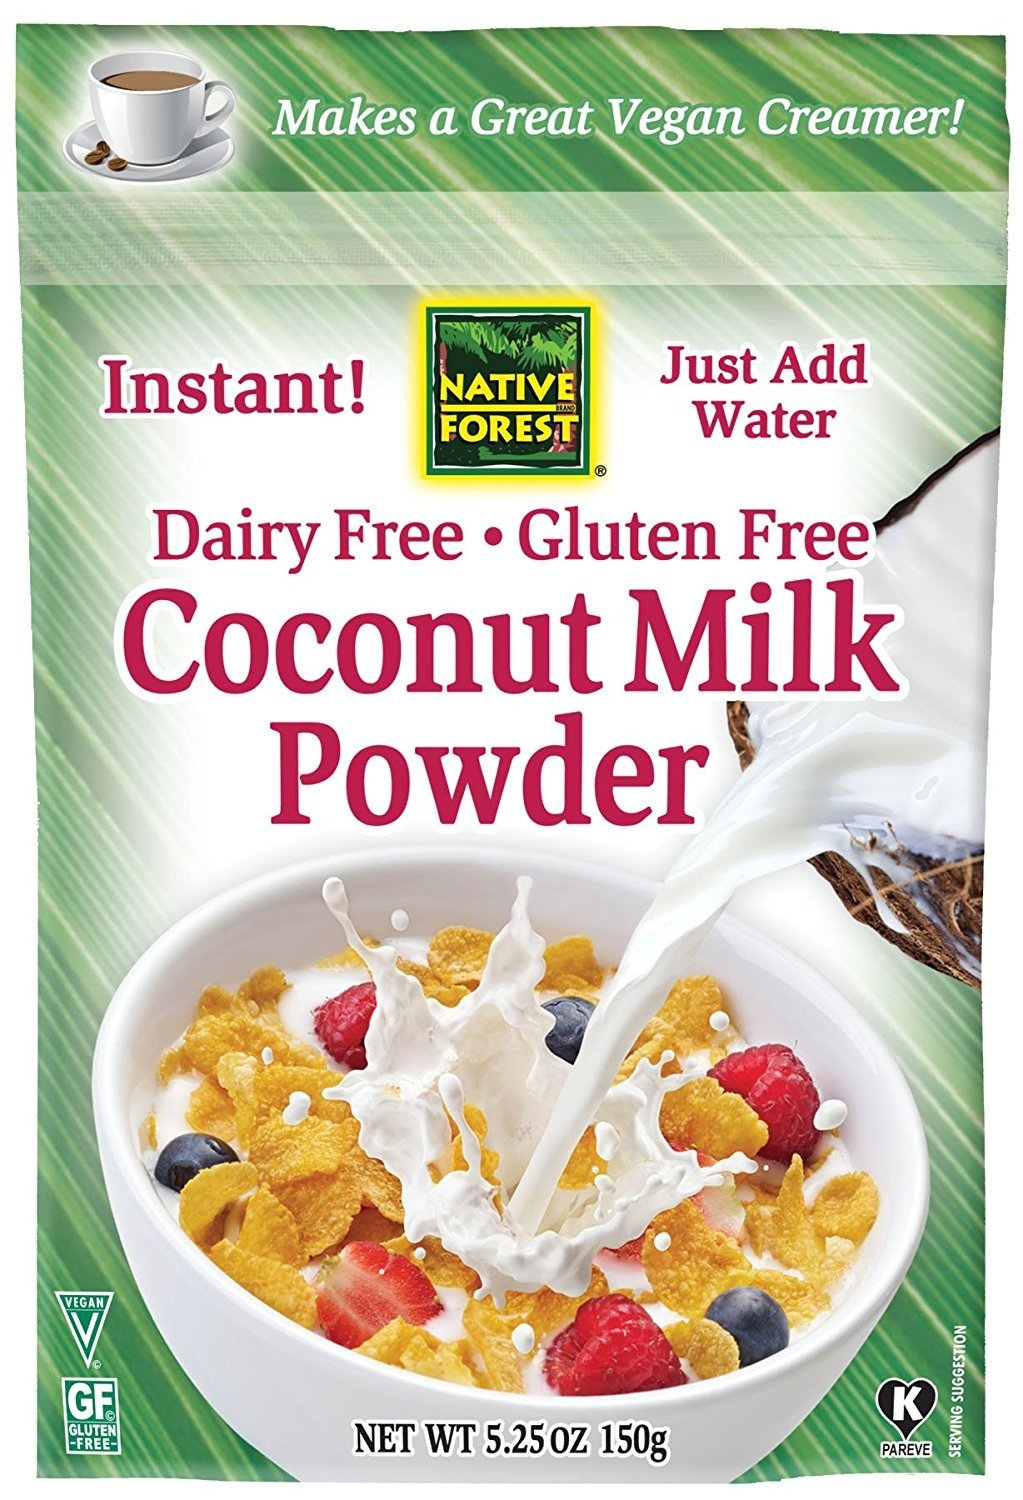 Native Forest Coconut Milk Powder, 5.25 Ounce (Pack of 12)